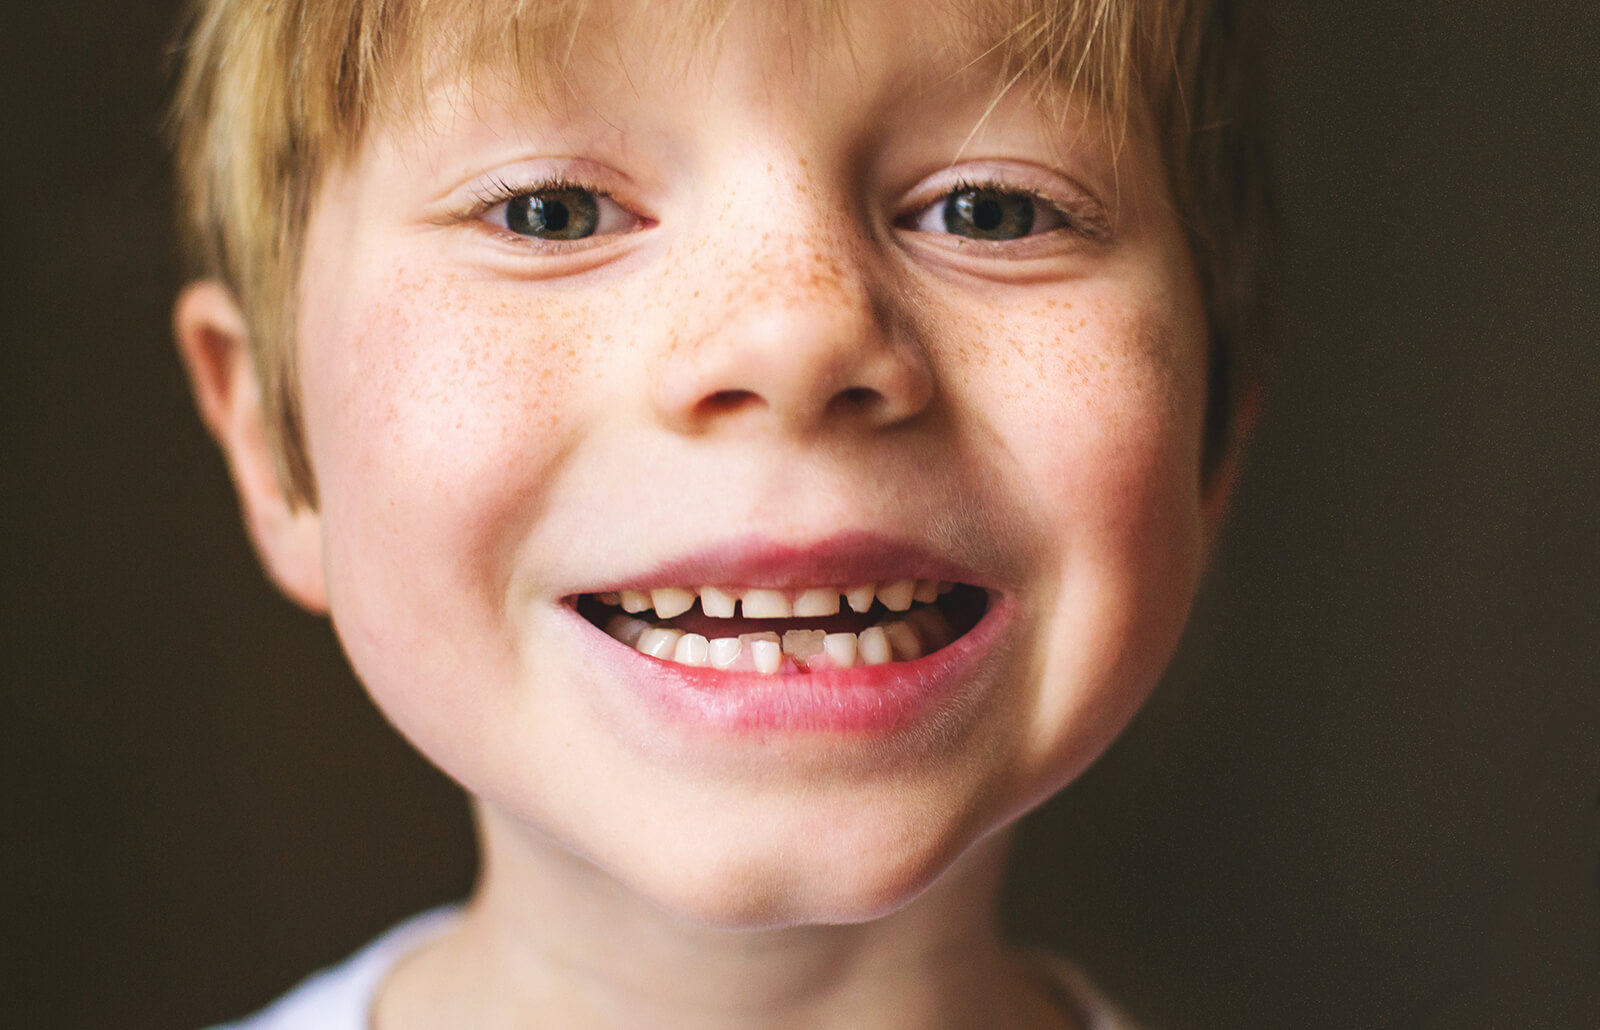 Why Do Children Have Extra Teeth? | LoveToKnow